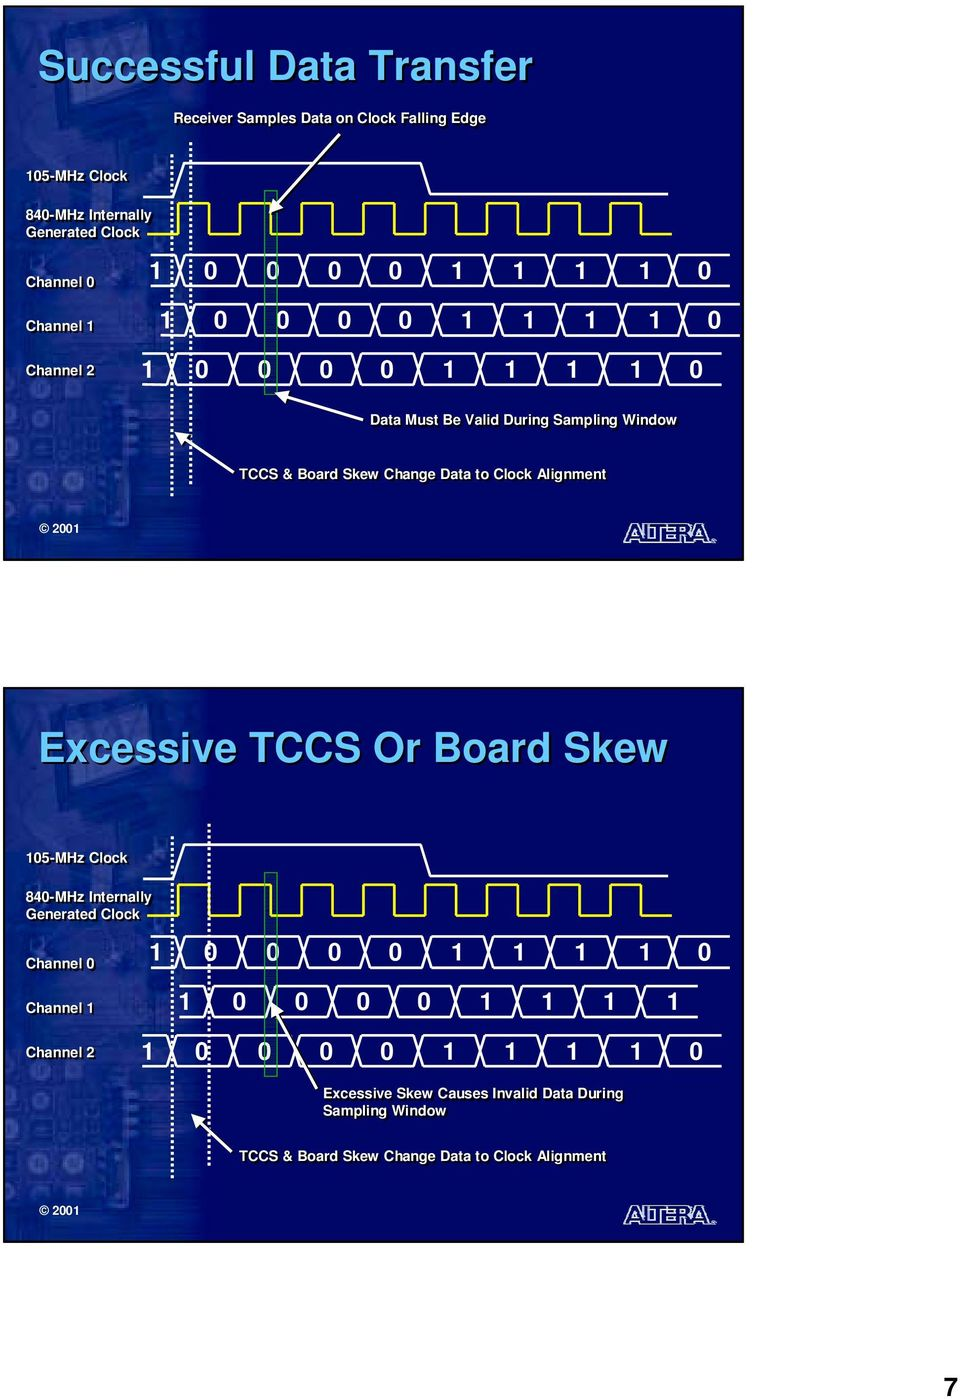 Alignment Excessive TCCS Or Board Skew 05-MHz 840-MHz Internally Generated Channel 0 Channel 0 0 0 0 0 0 0 0